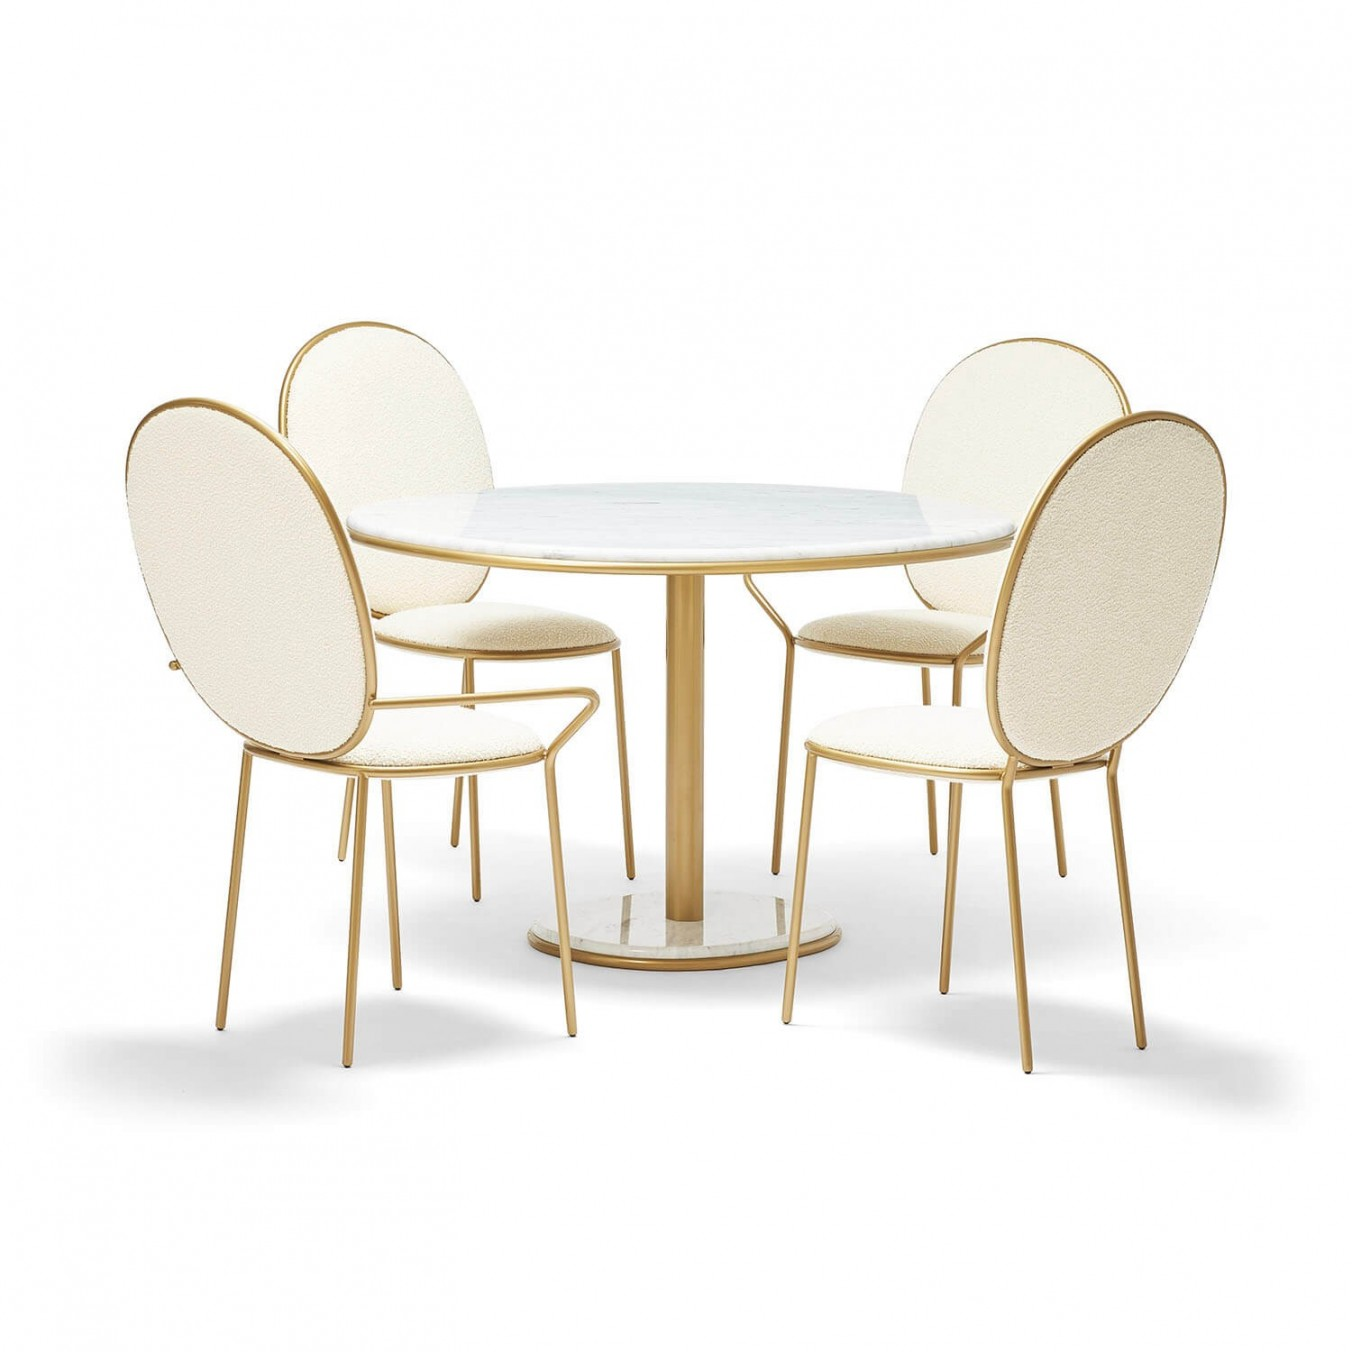 Stay Dining Table Round